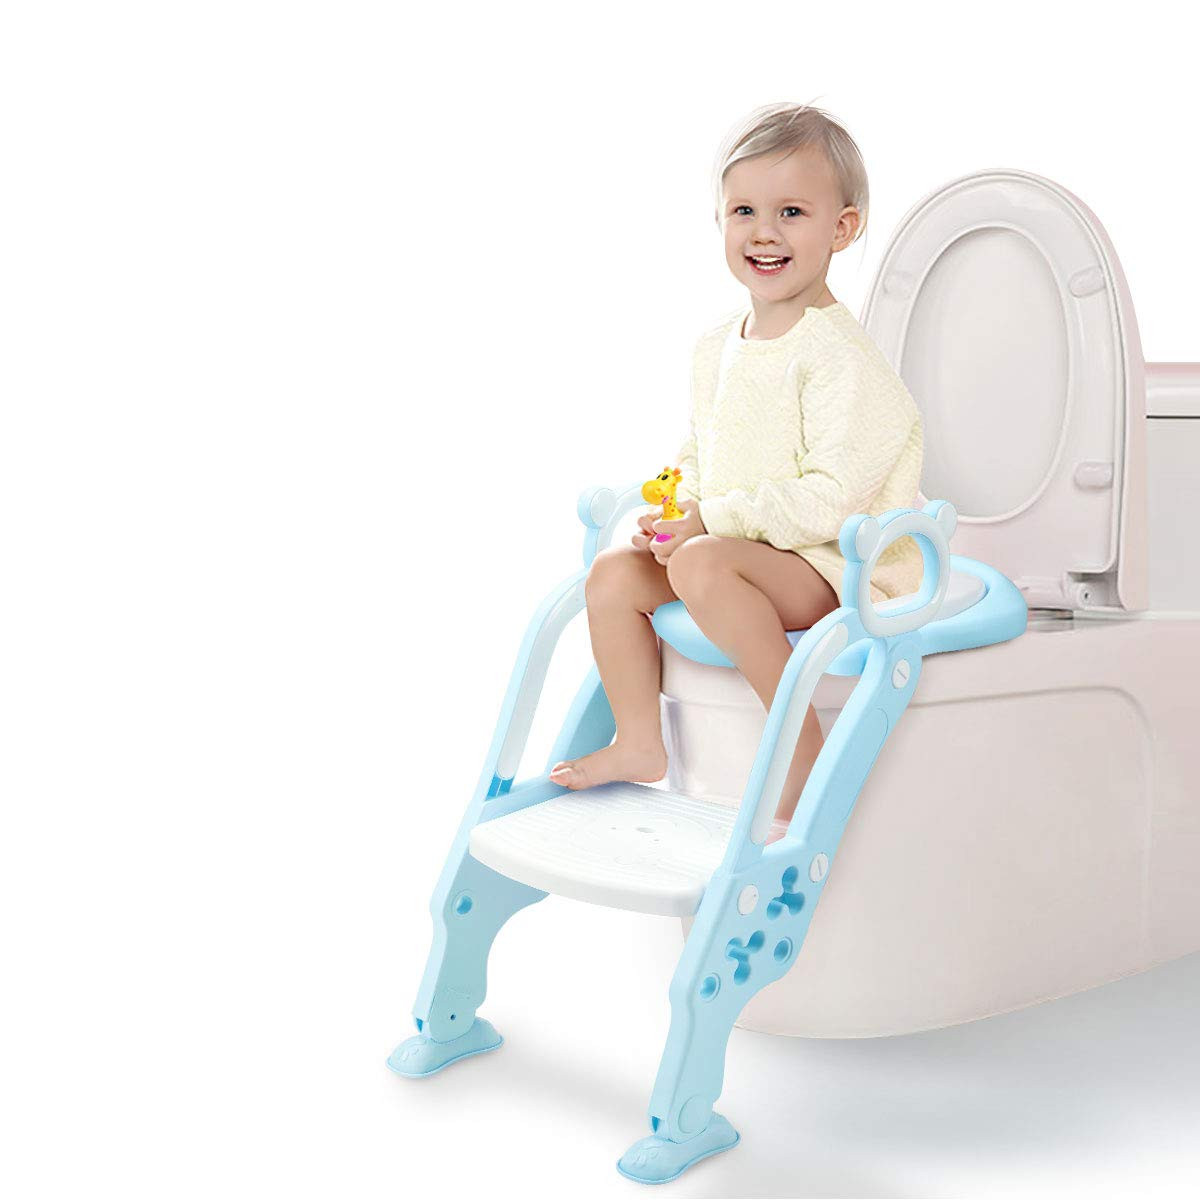 GrowthPic Toddler Toilet Training Seat Ladder with Sturdy Non-Slip Wide Step and Soft Cushion for Boys and Girls